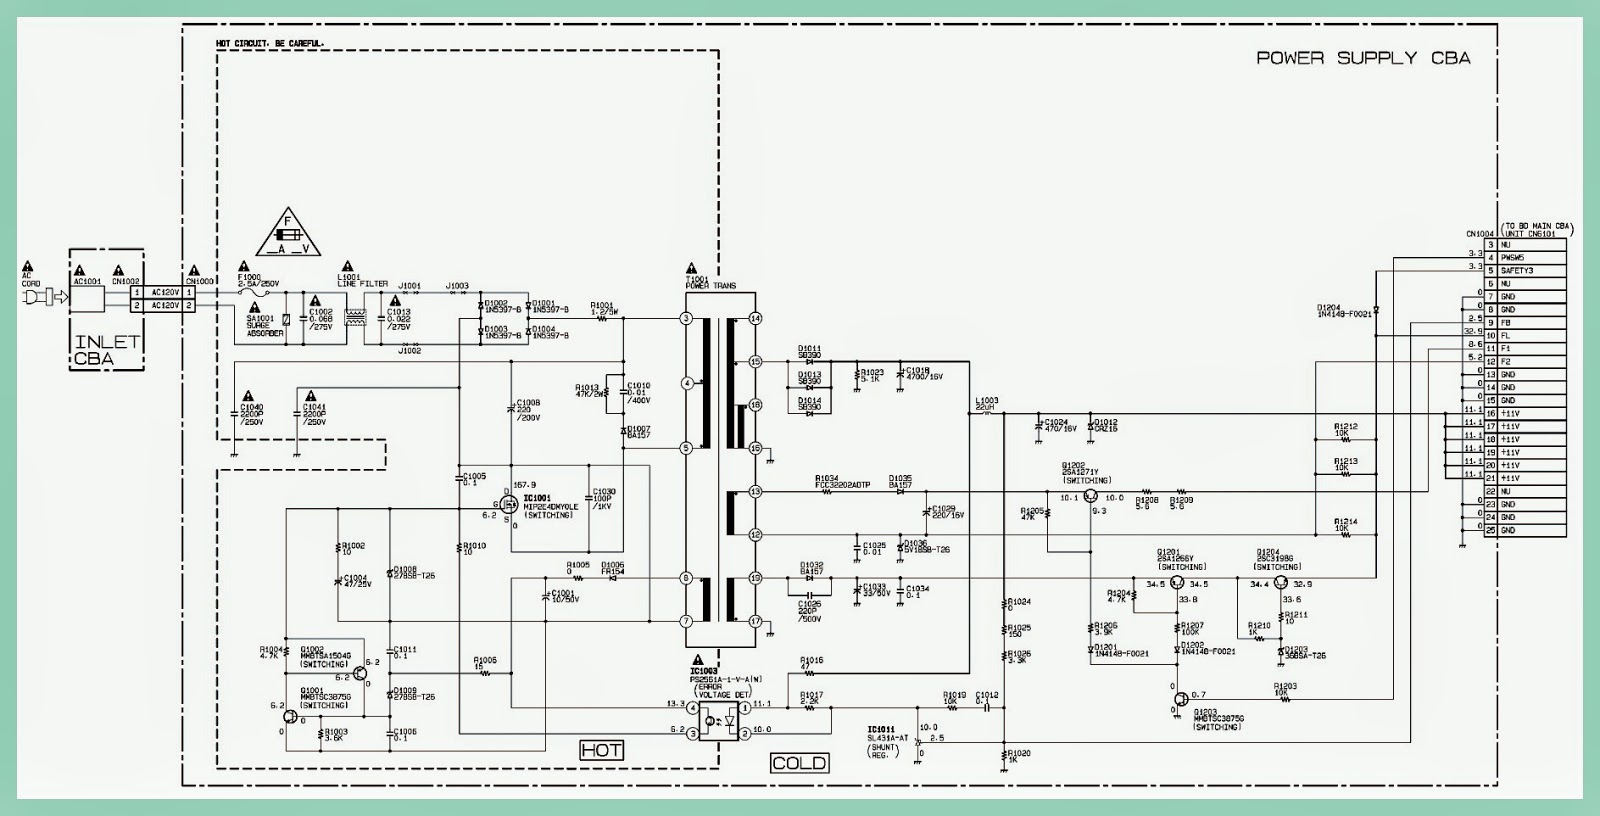 Schematic centre additionally Tech Specifications moreover House Electrical Plan furthermore Bass 550 Jbl Powered Subwoofer additionally Onkyo Bd Sp809 Blu Ray Disc Player Smps. on equipment schematic diagrams